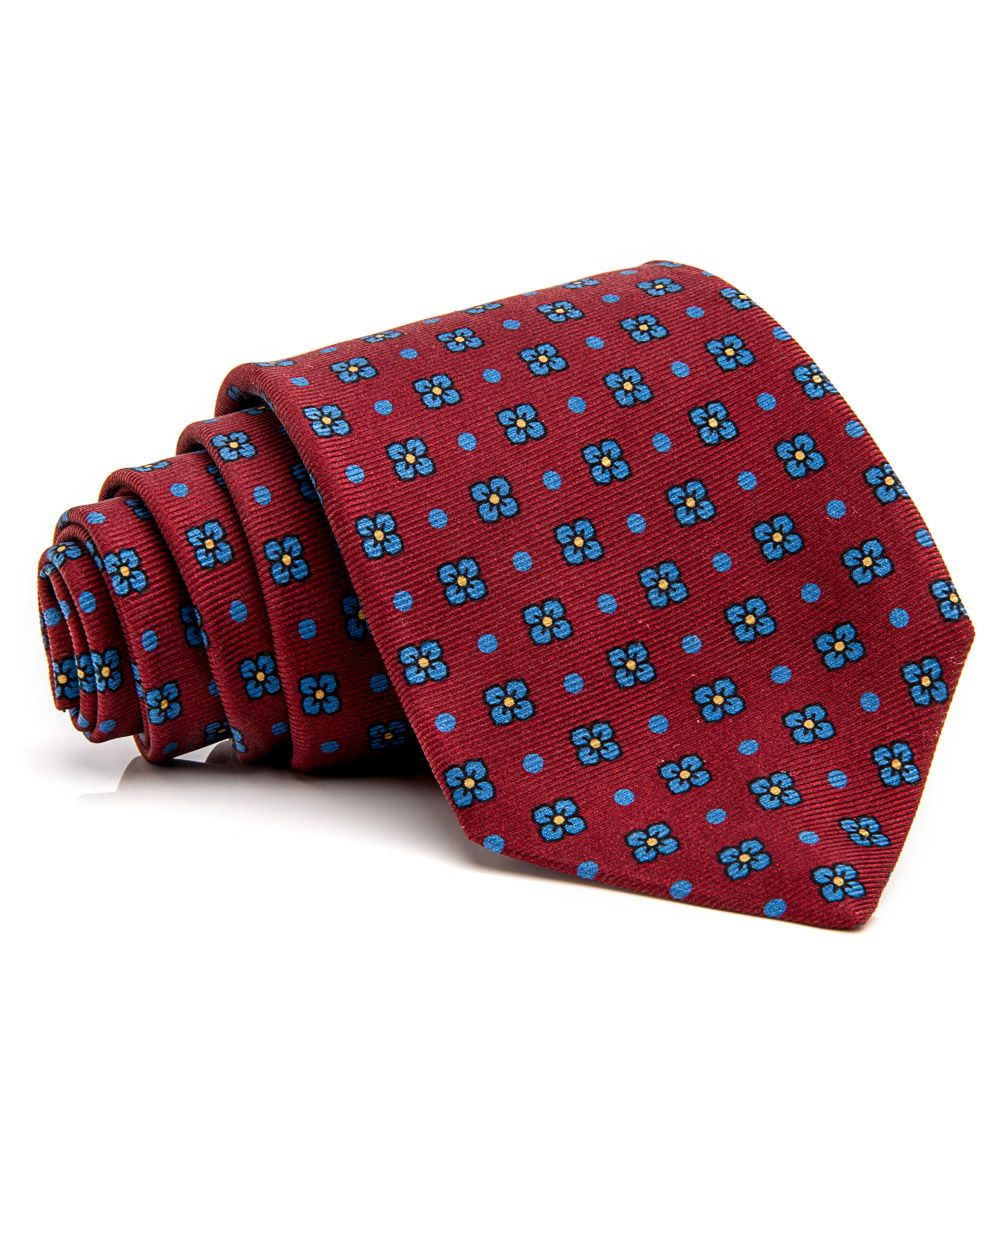 Kiton Wine and Blue Floral Tie 59'' long 3.5'' wide 100% silk Handmade in Italy